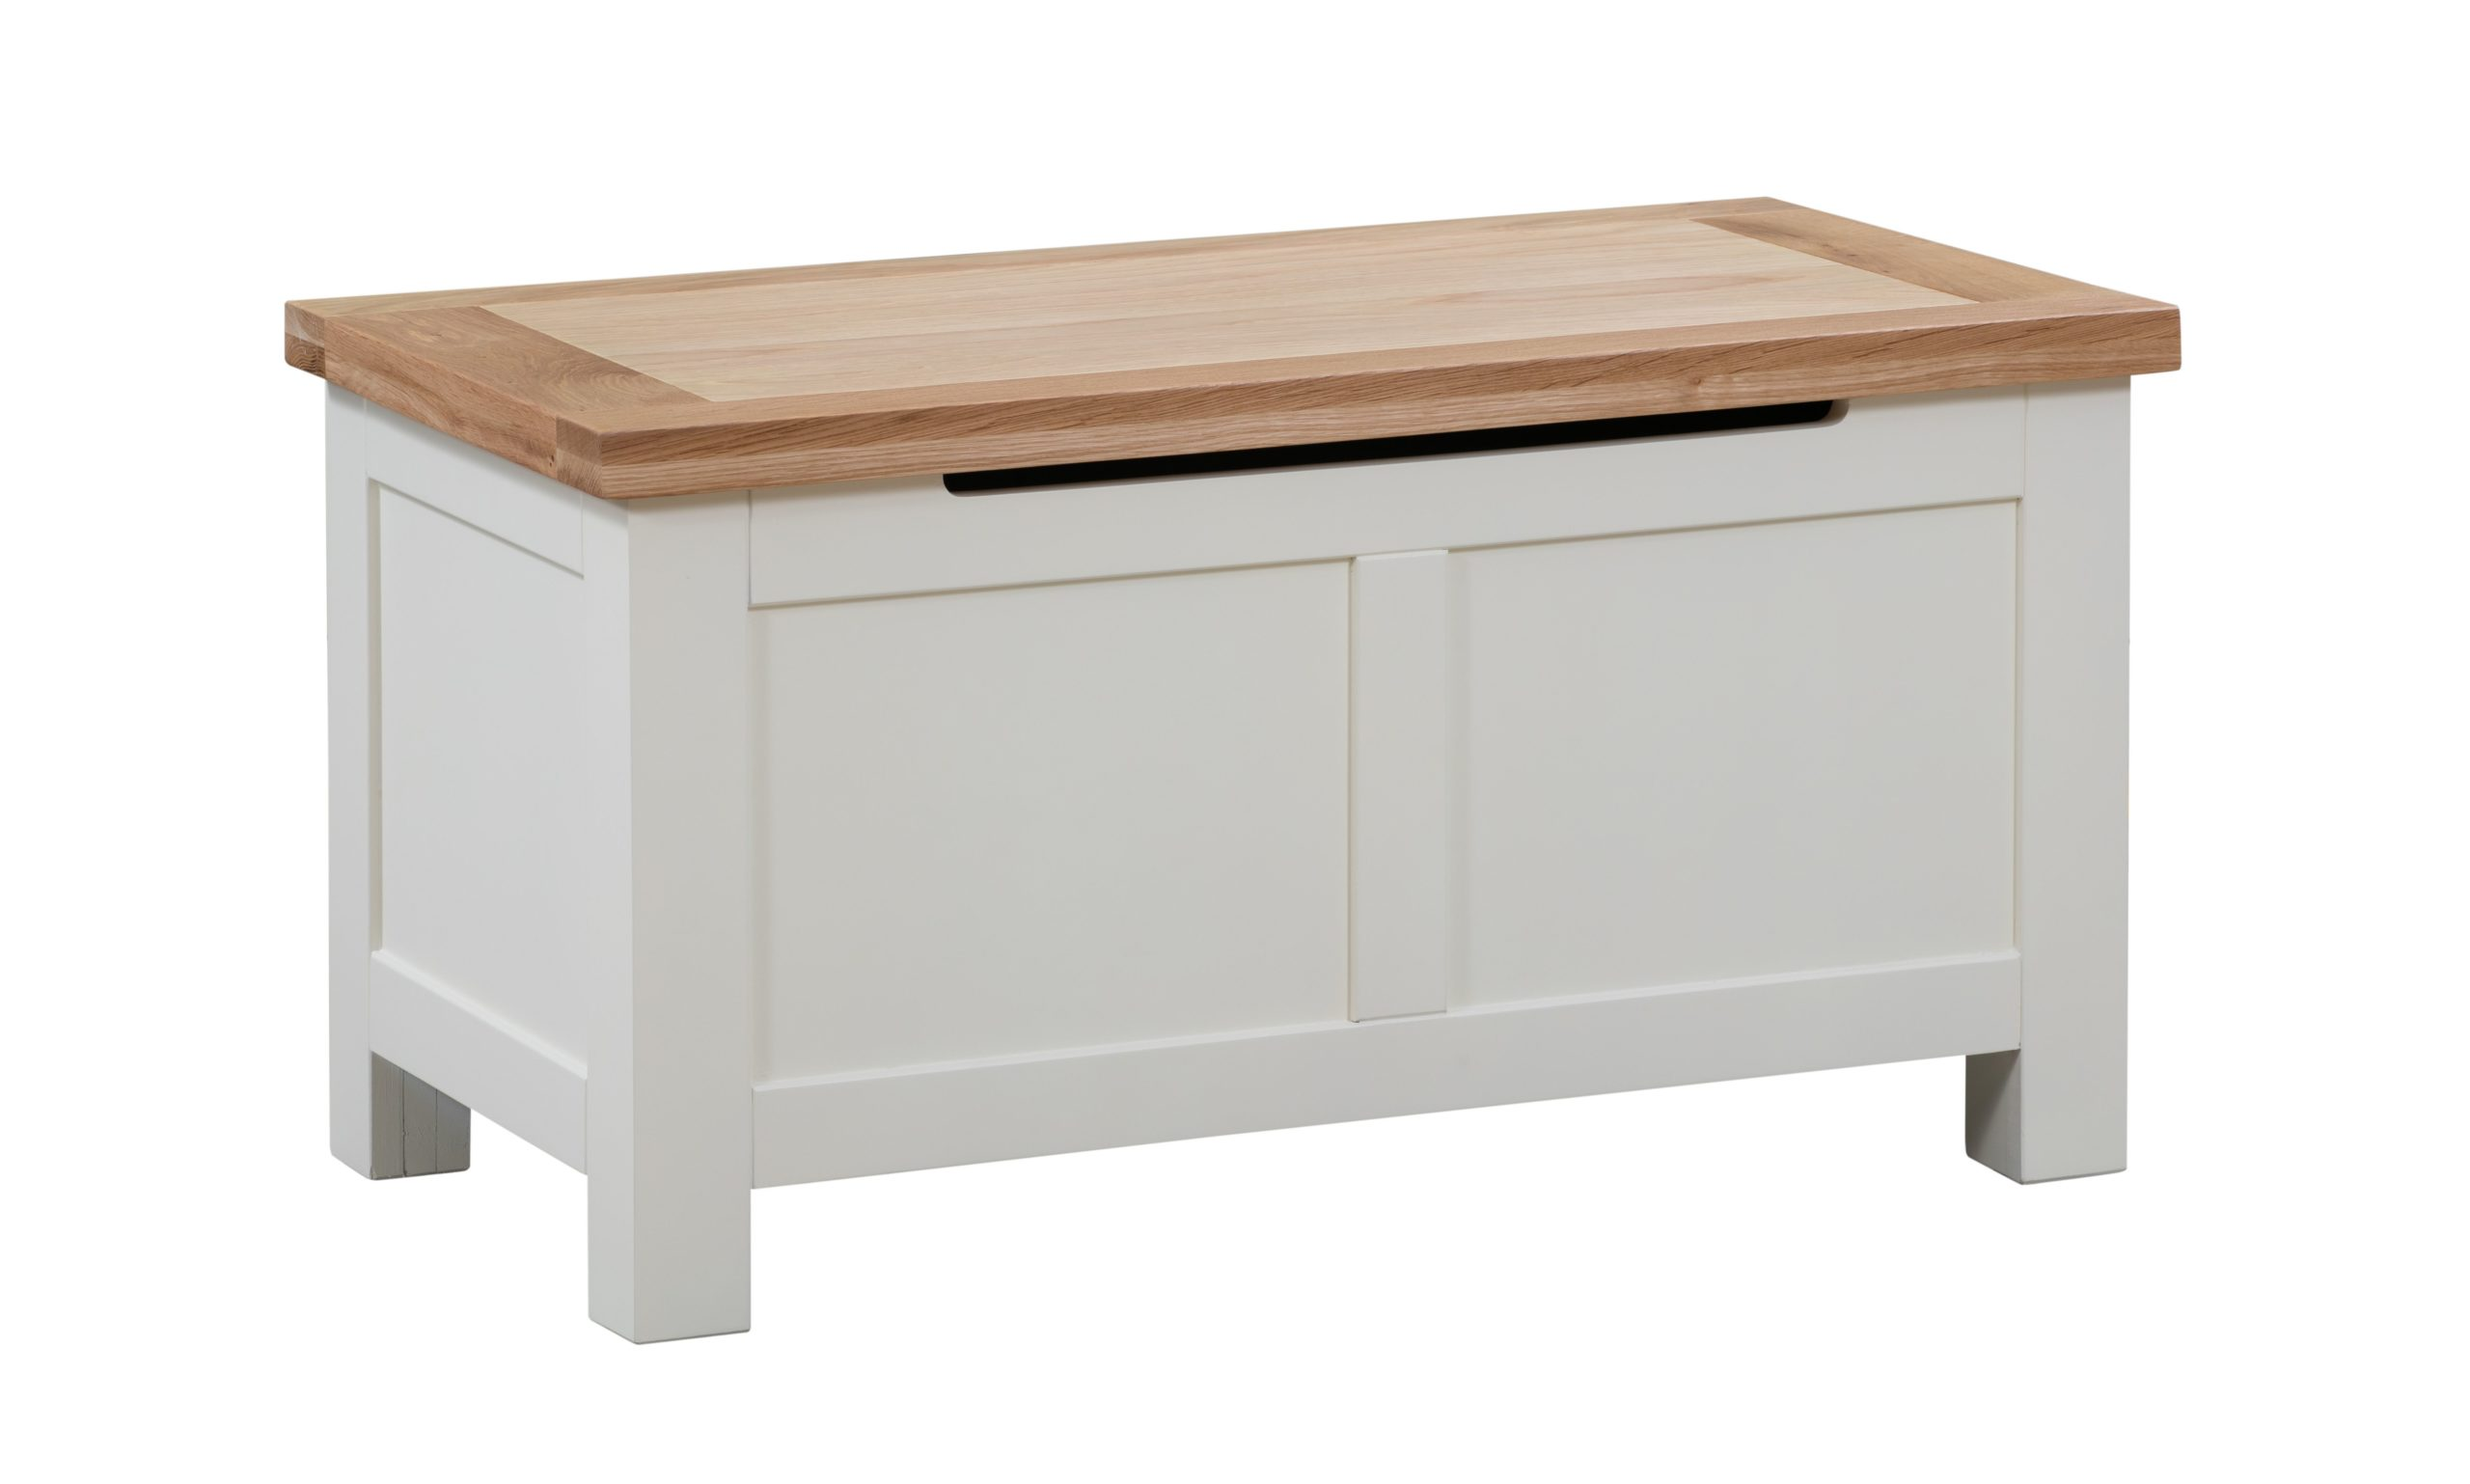 Dorset painted blanket box with stay up lid